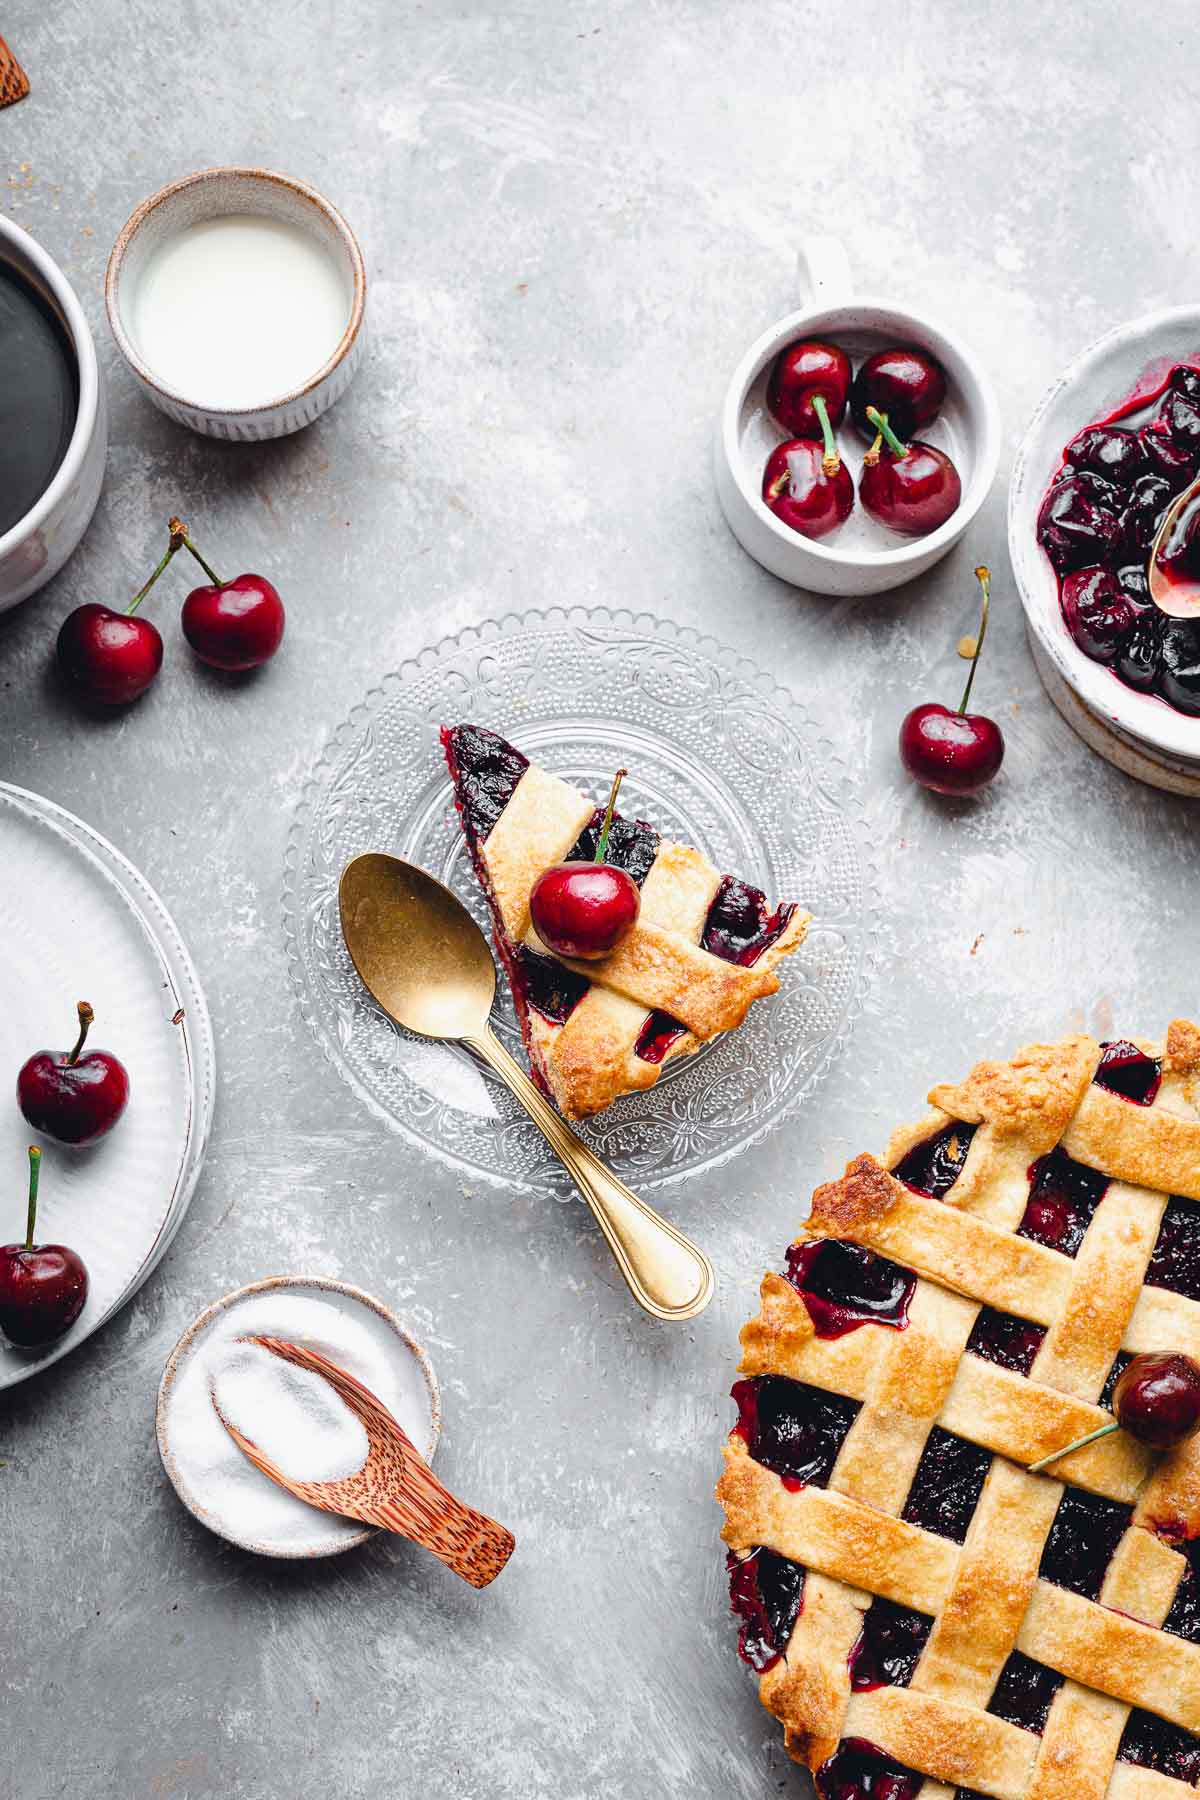 A slice of cherry pie placed on a round glass plate with various ingredients scattered around.